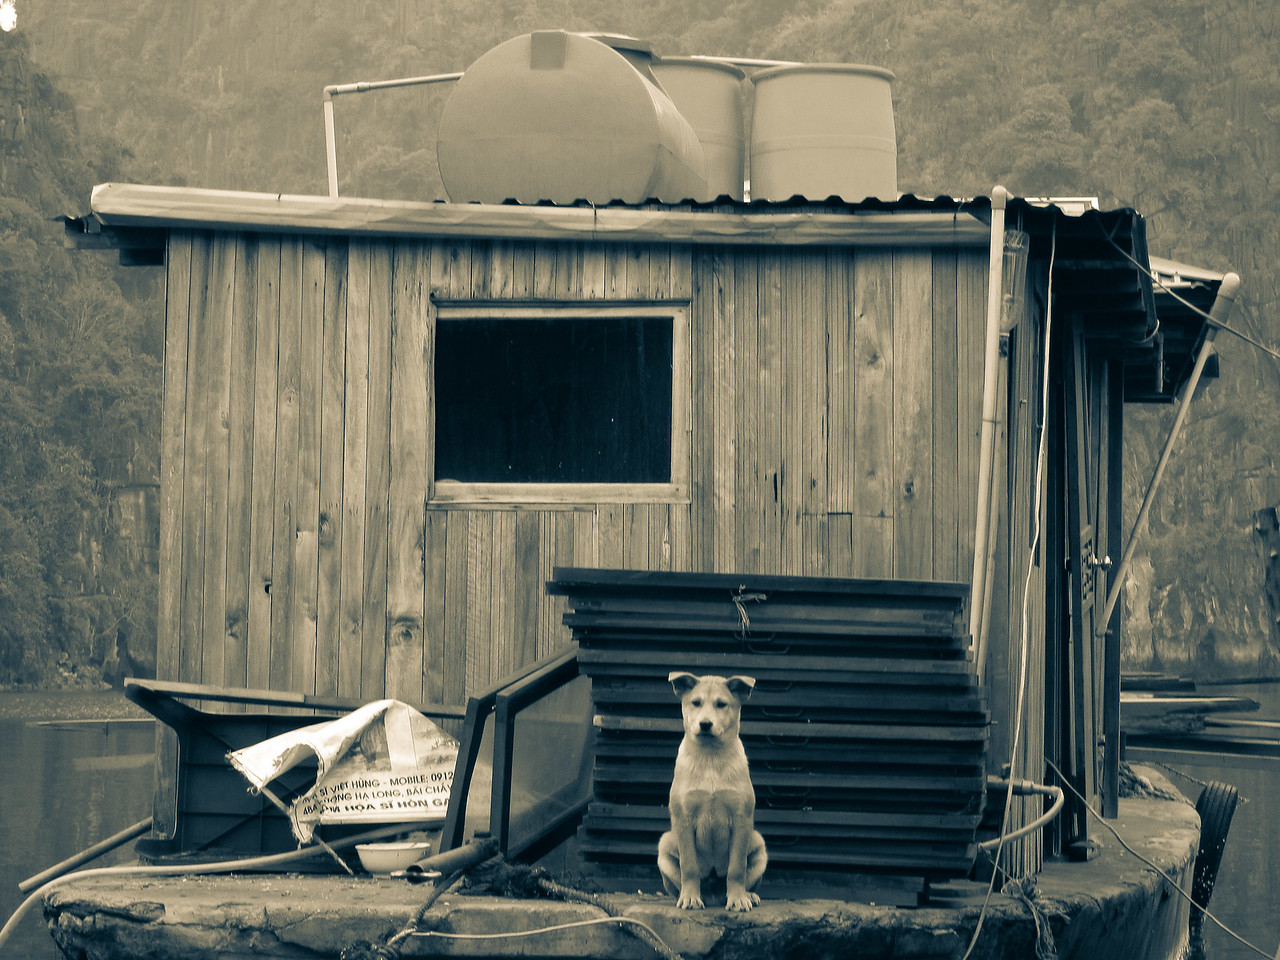 'Dog Rules' - A dog living in the floating village in Ha Long Bay, Vietnam